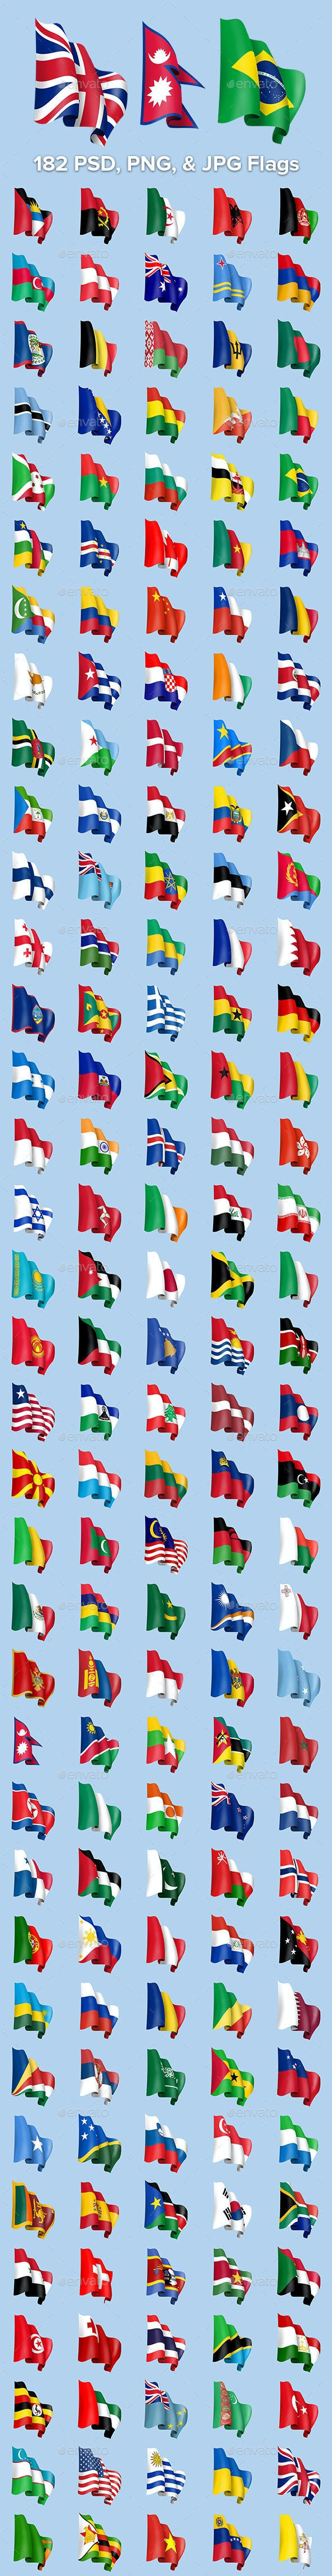 189 Waving Country Flags - Objects Illustrations